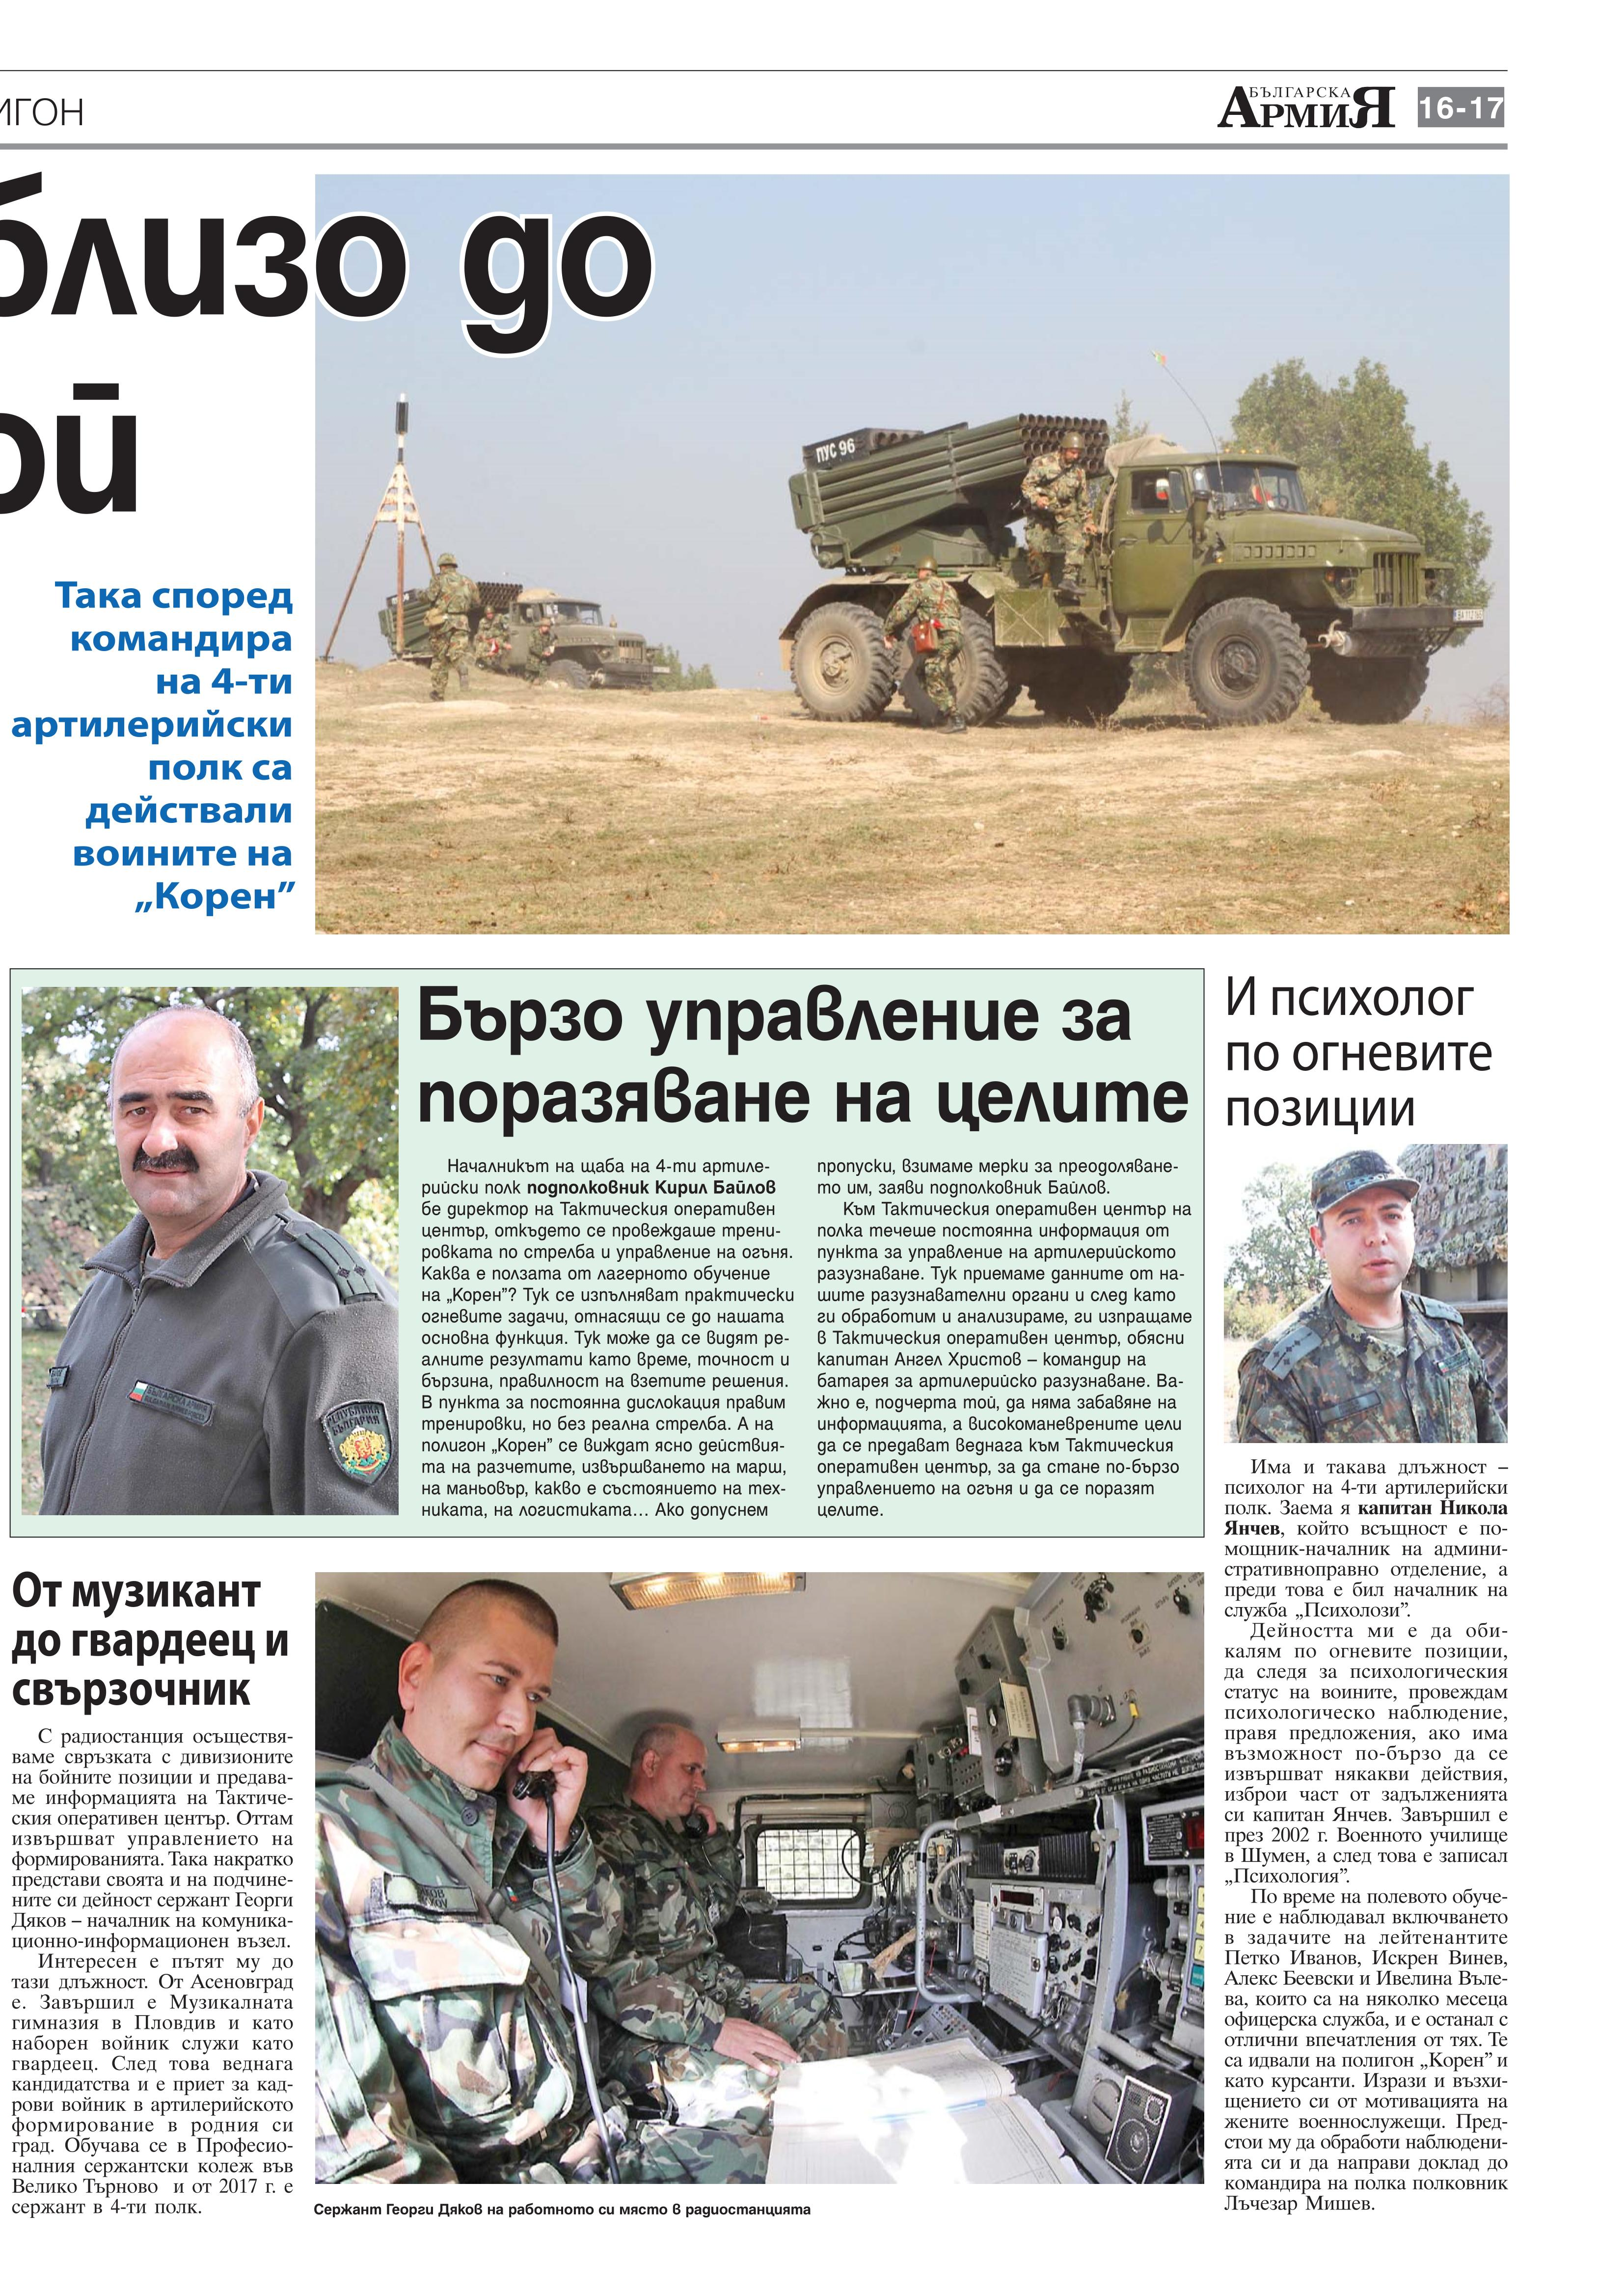 https://armymedia.bg/wp-content/uploads/2015/06/17.page1_-114.jpg